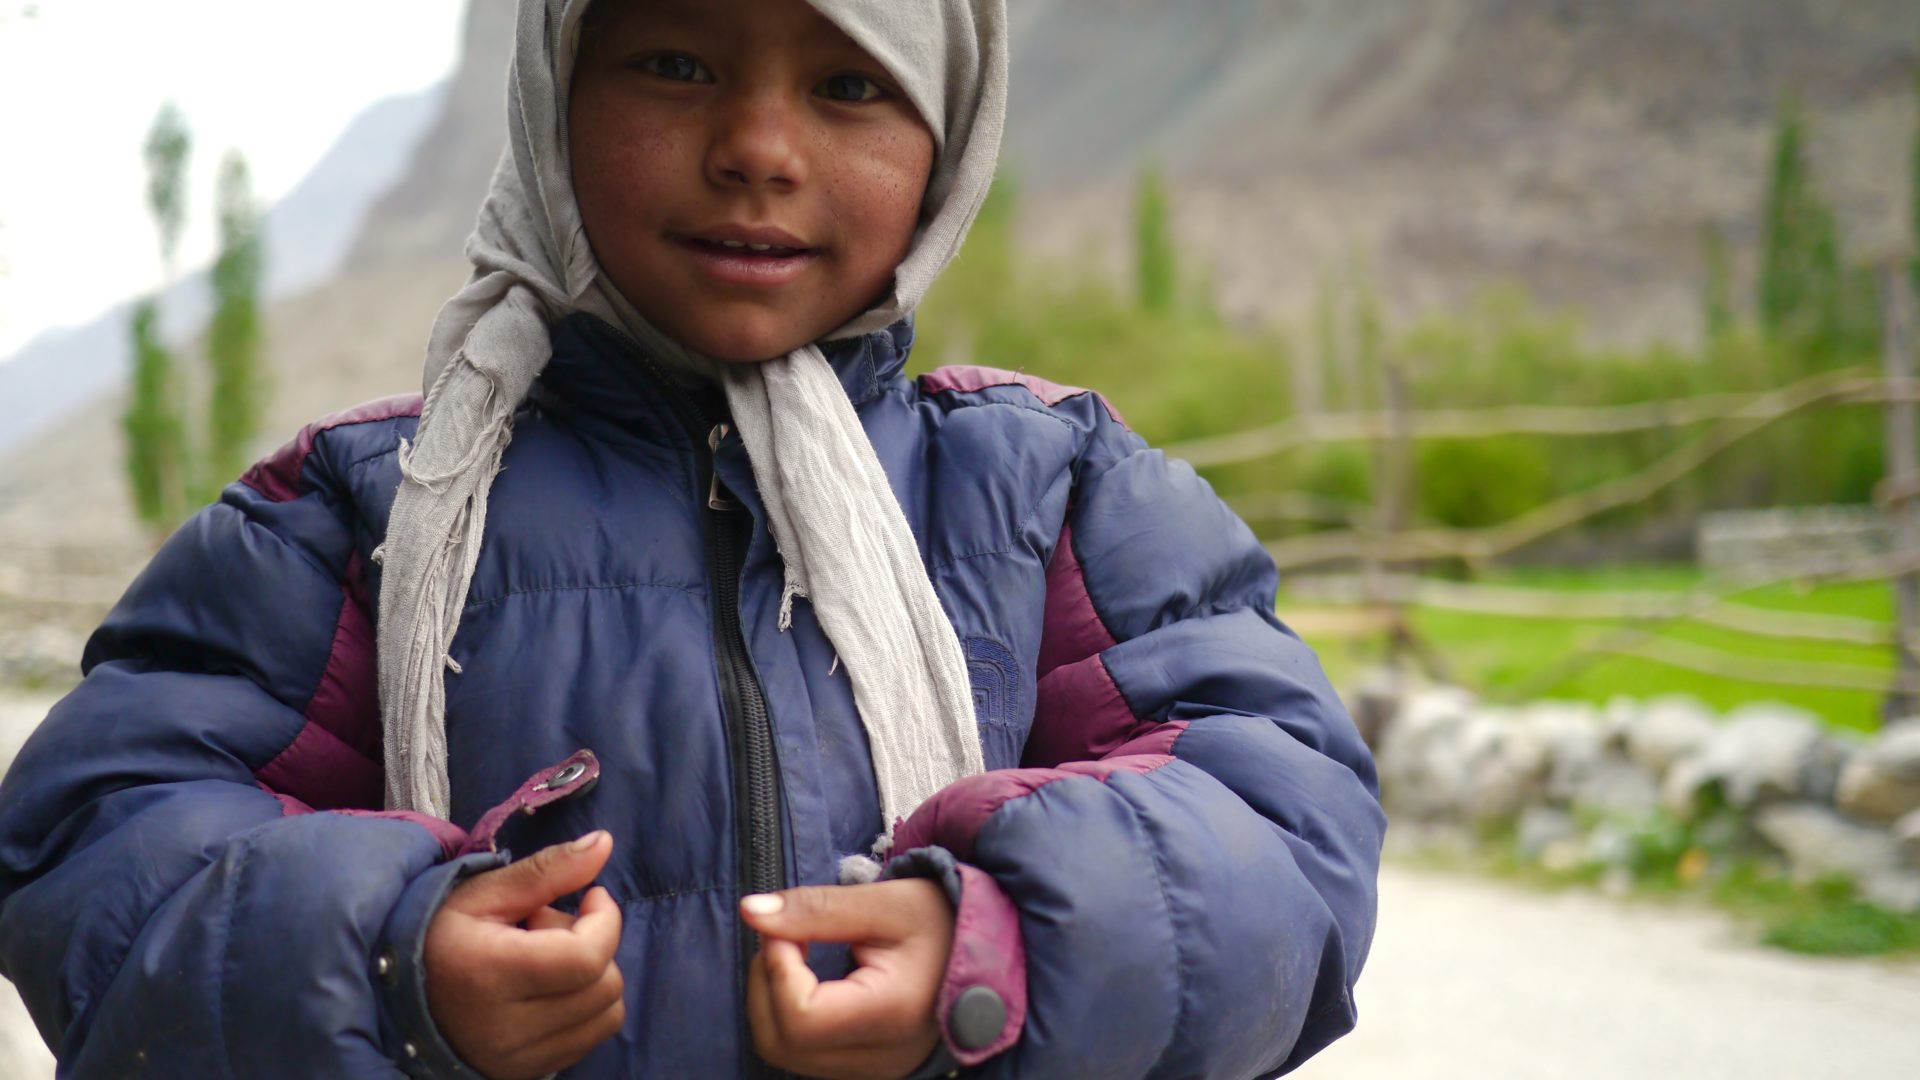 A child in the remote village of Turtuk, the last settlement before the Pakistan border we're allowed to visit.